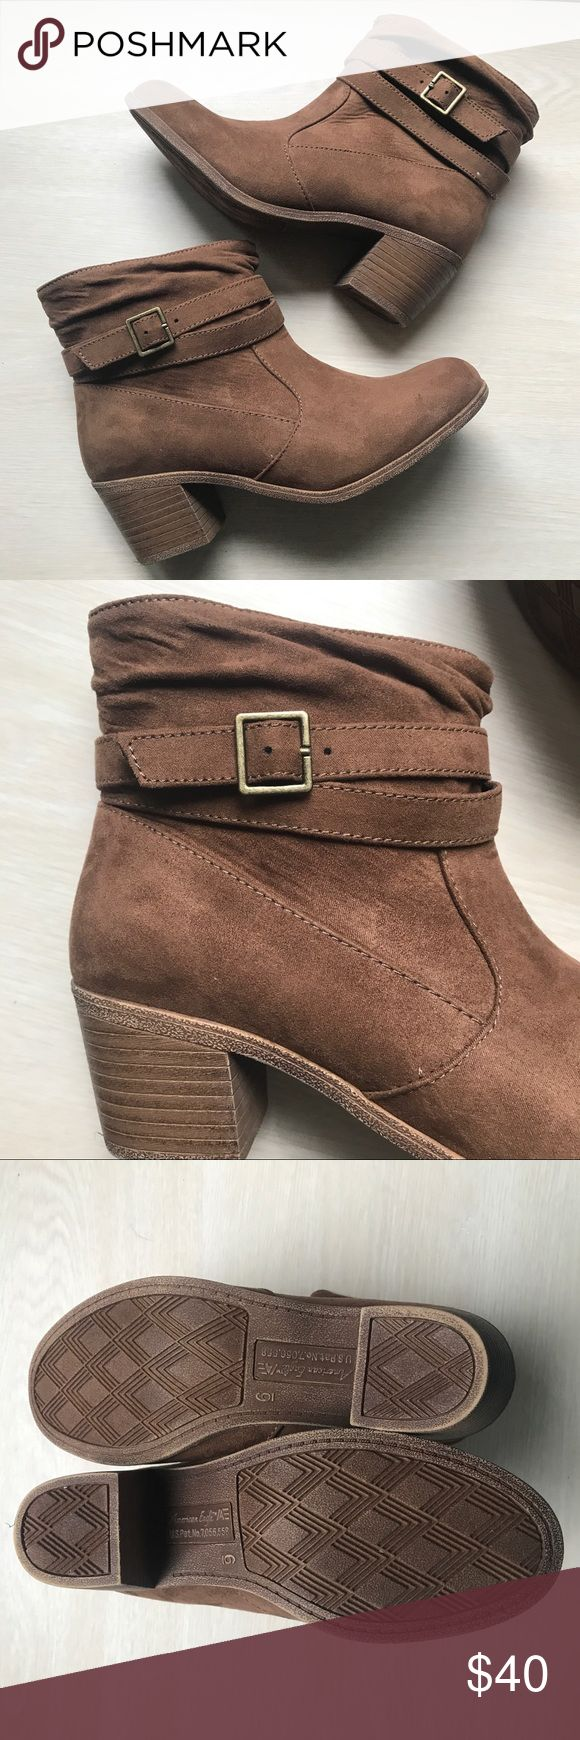 American Eagle brown booties Brown booties with buckle in the side - like new conditions American Eagle Outfitters Shoes Ankle Boots & Booties